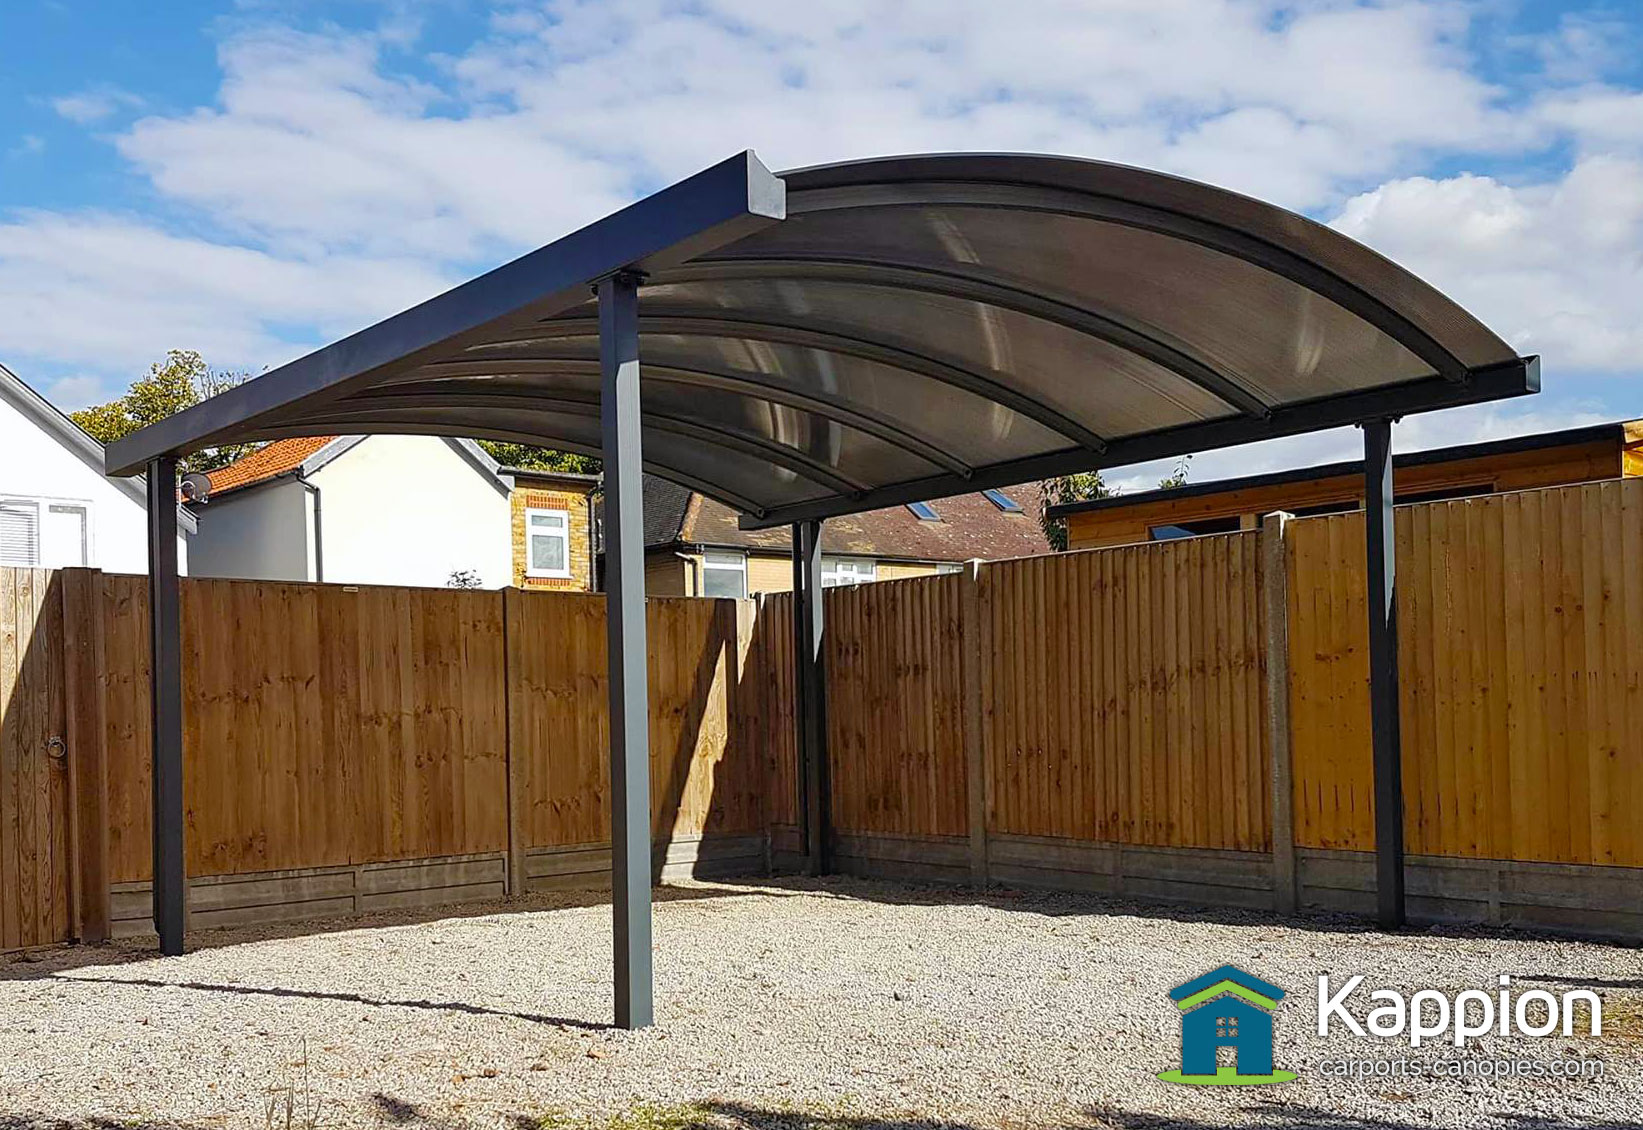 Carport installed in whitstable kappion carports canopies 1 car carport